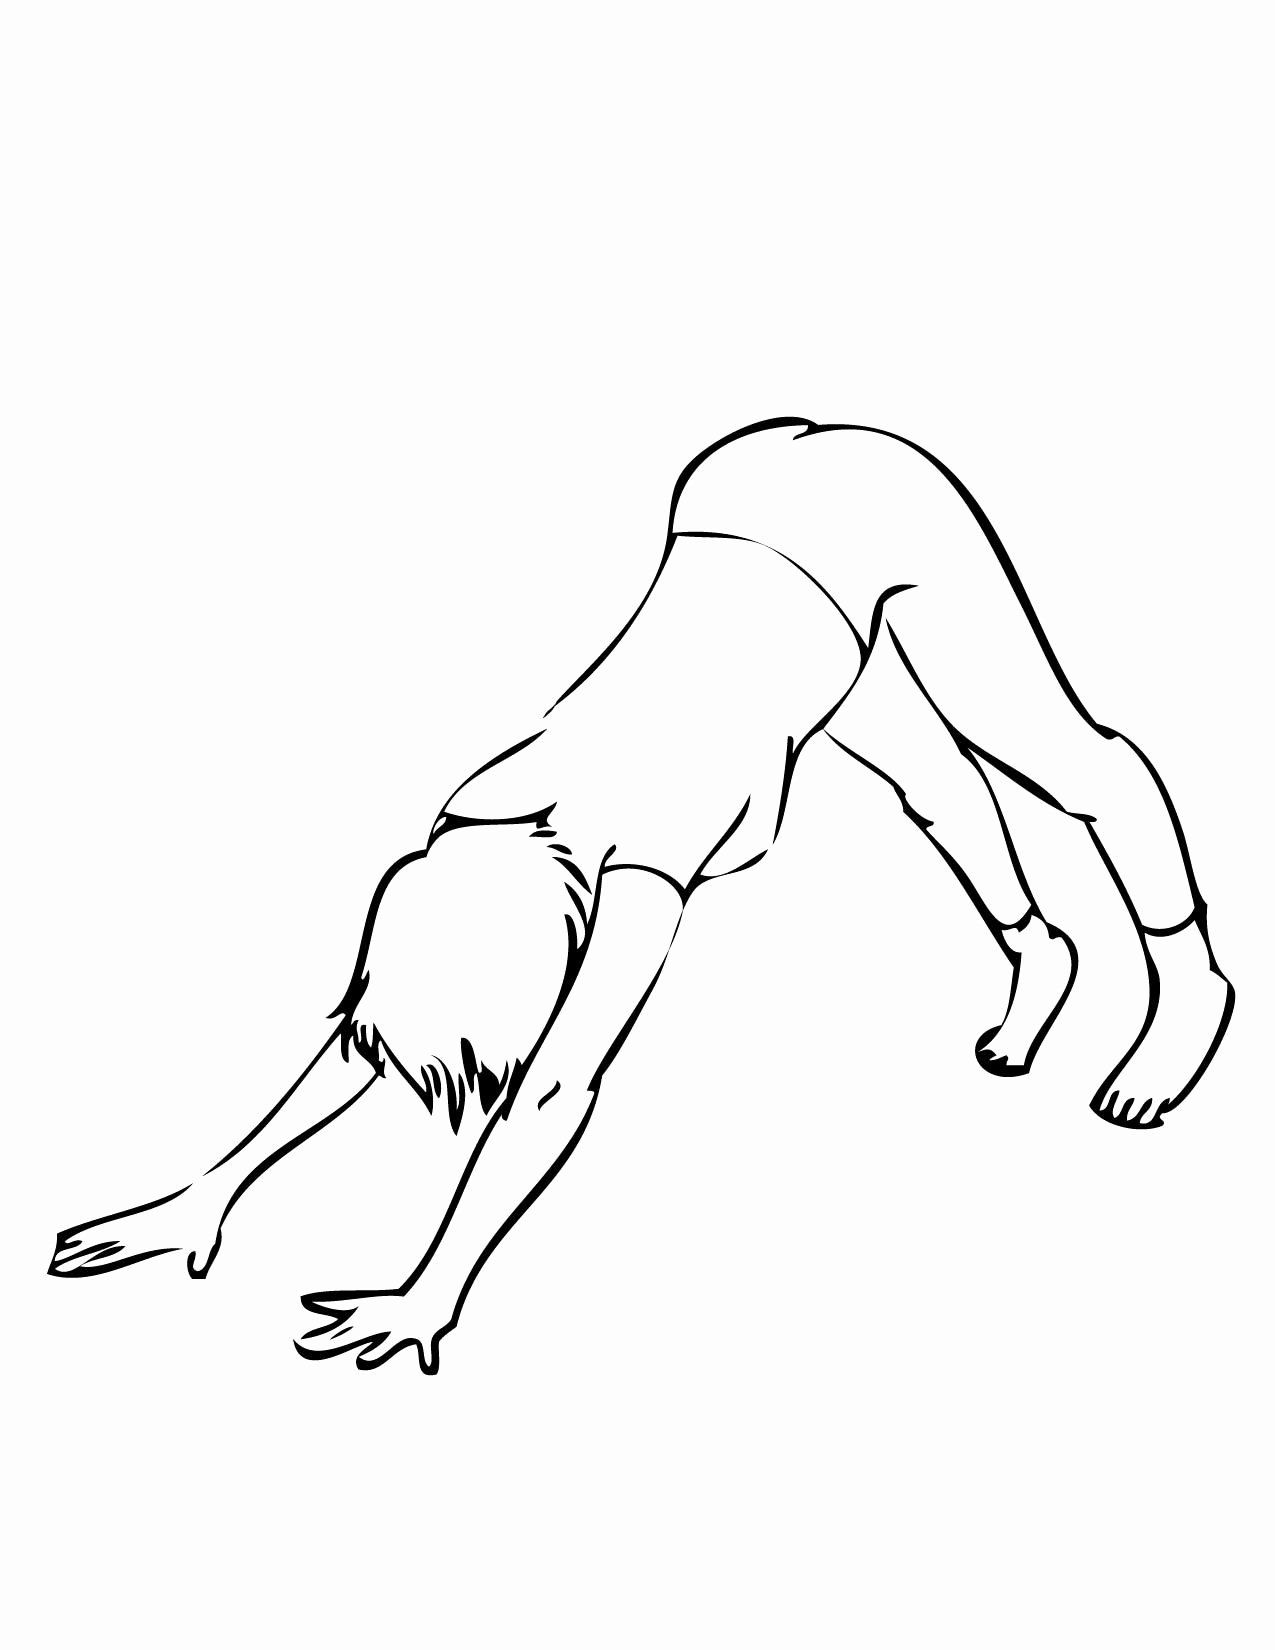 Yoga Coloring Pages To Print Fresh Free Printable Yoga Coloring Pages Coloring 365 Yoga For Kids Kids Yoga Poses Coloring Pages [ 1650 x 1275 Pixel ]